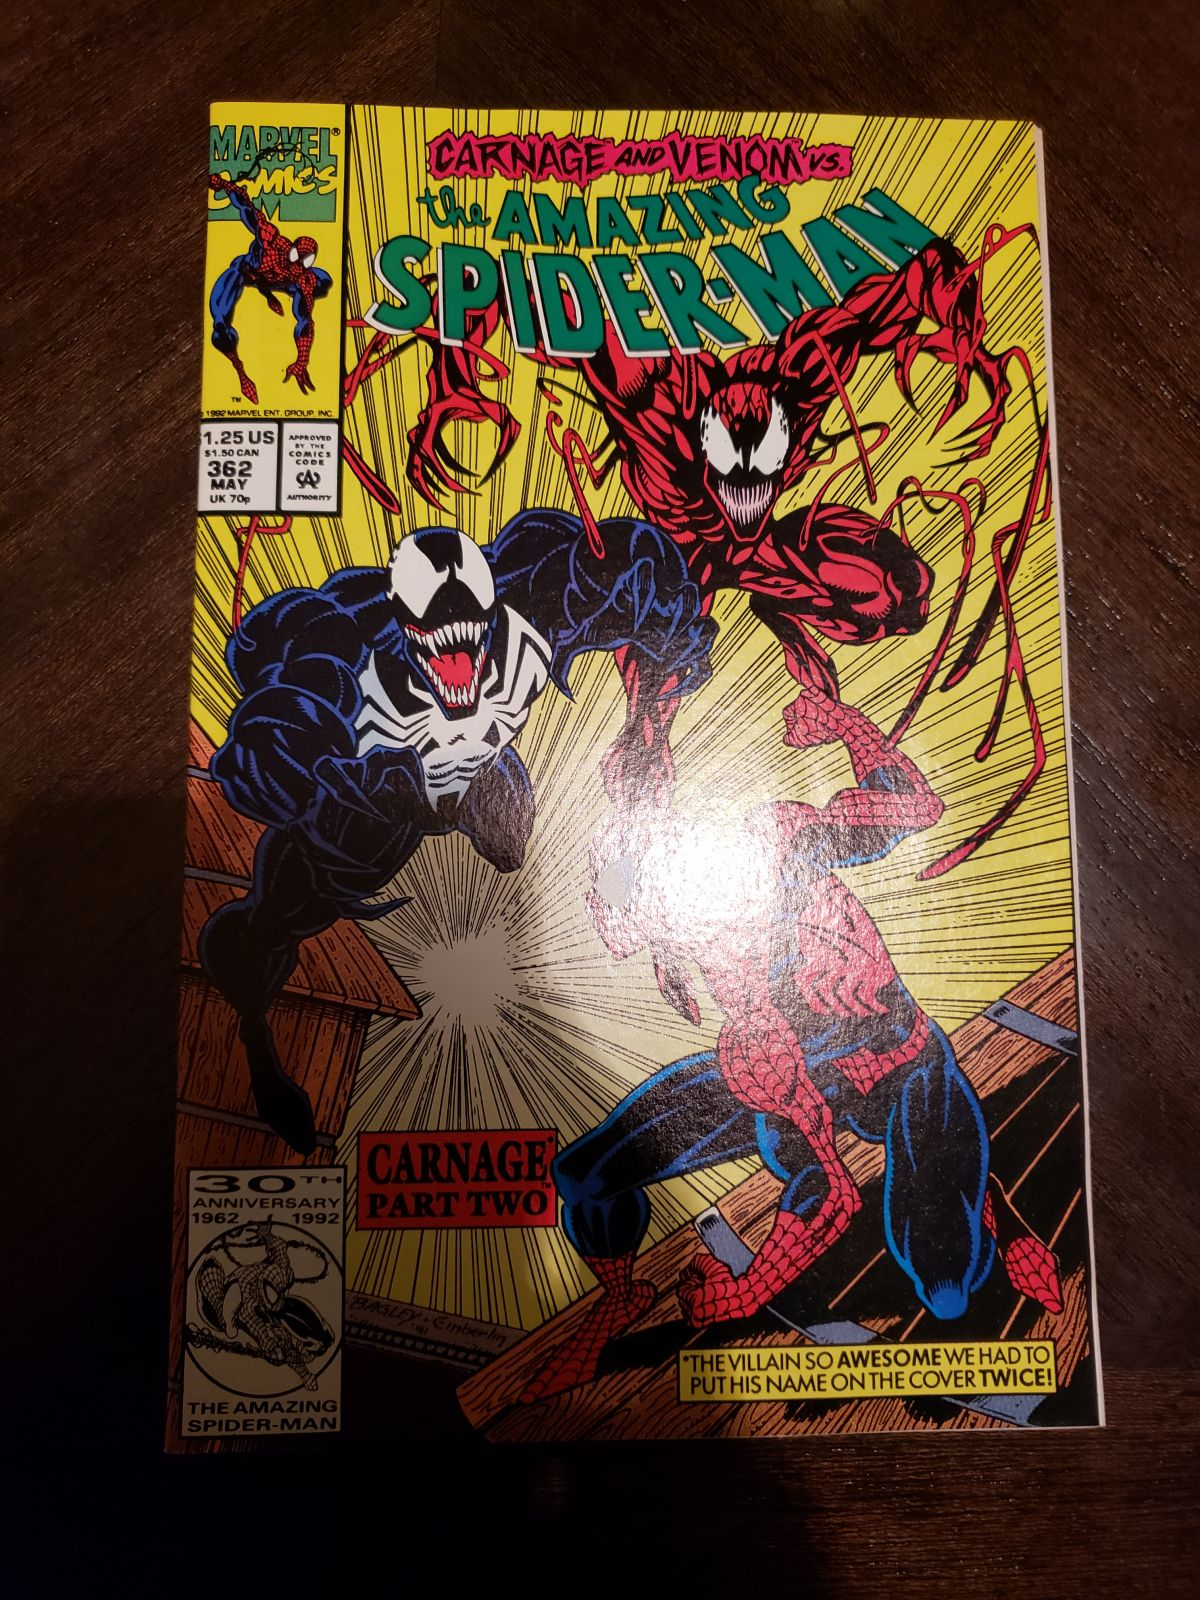 Ebay Seller Claimed this is NM+ Amazing Spider-man 362 - Hey